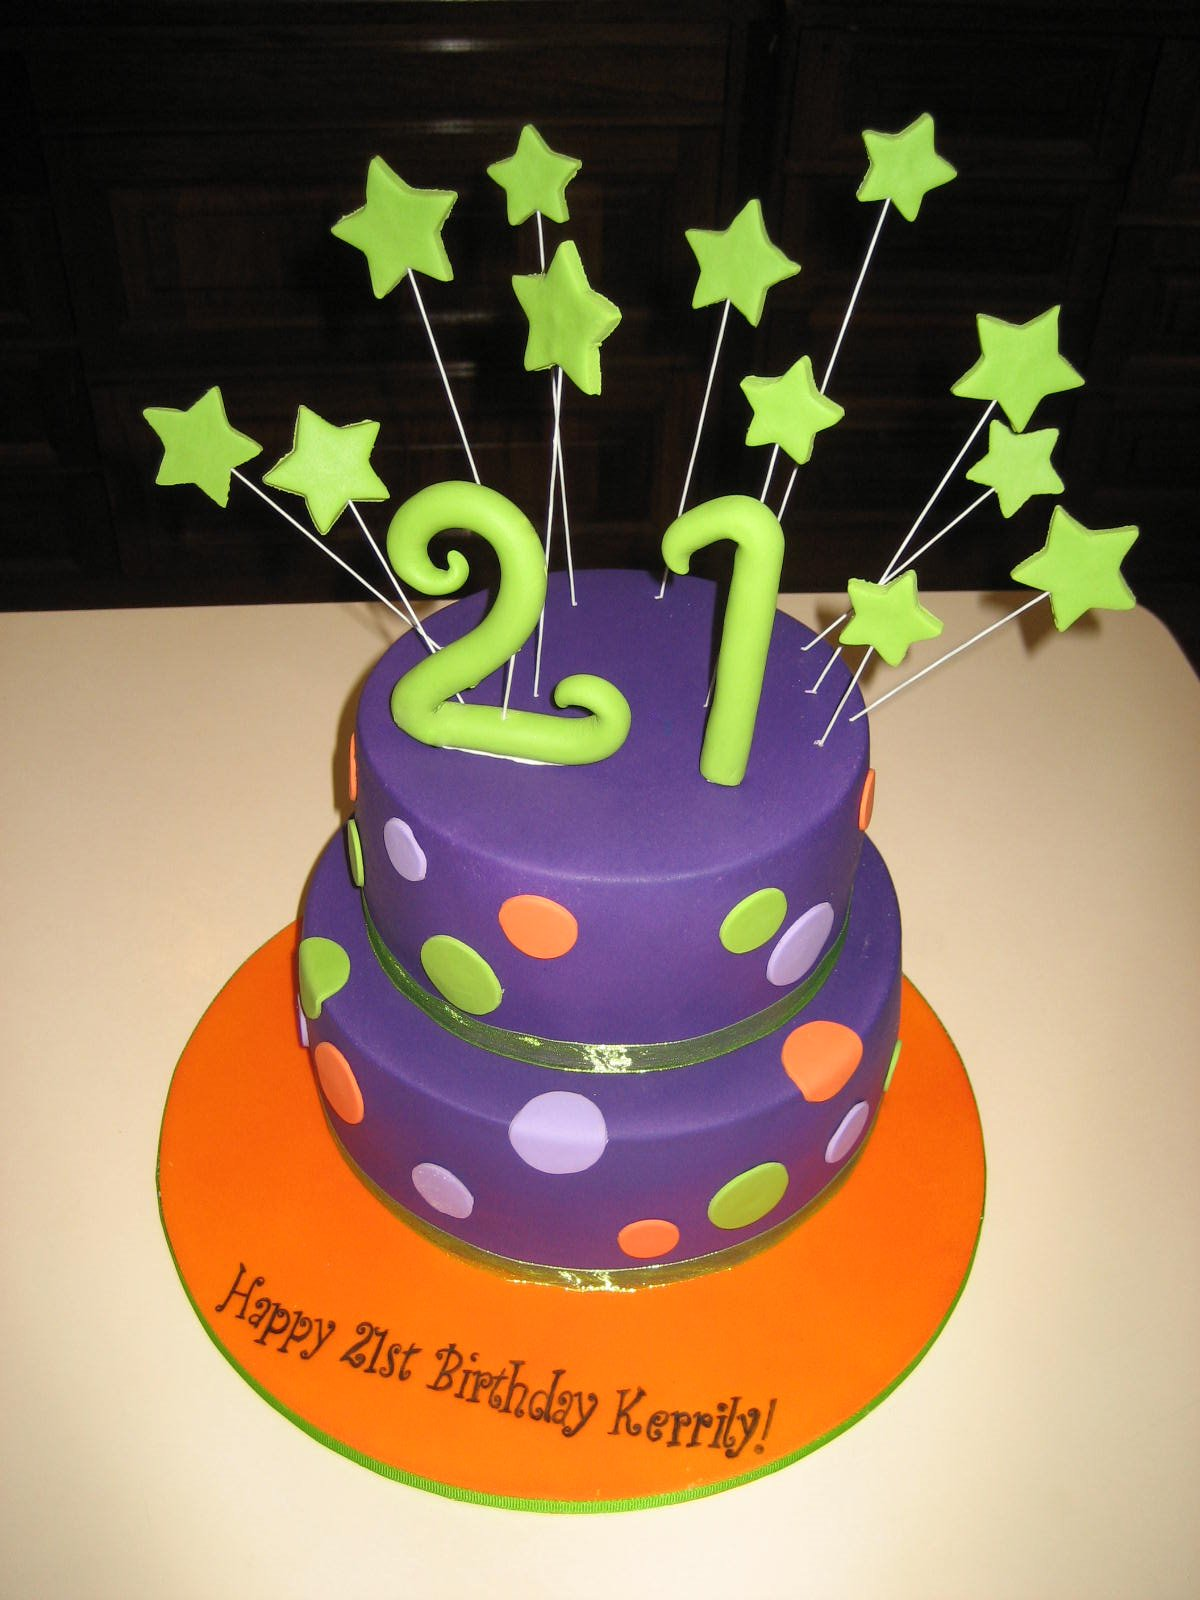 Happy 21St Birthday Cakes http://sweetcakecouture.blogspot.com/2012_03_01_archive.html